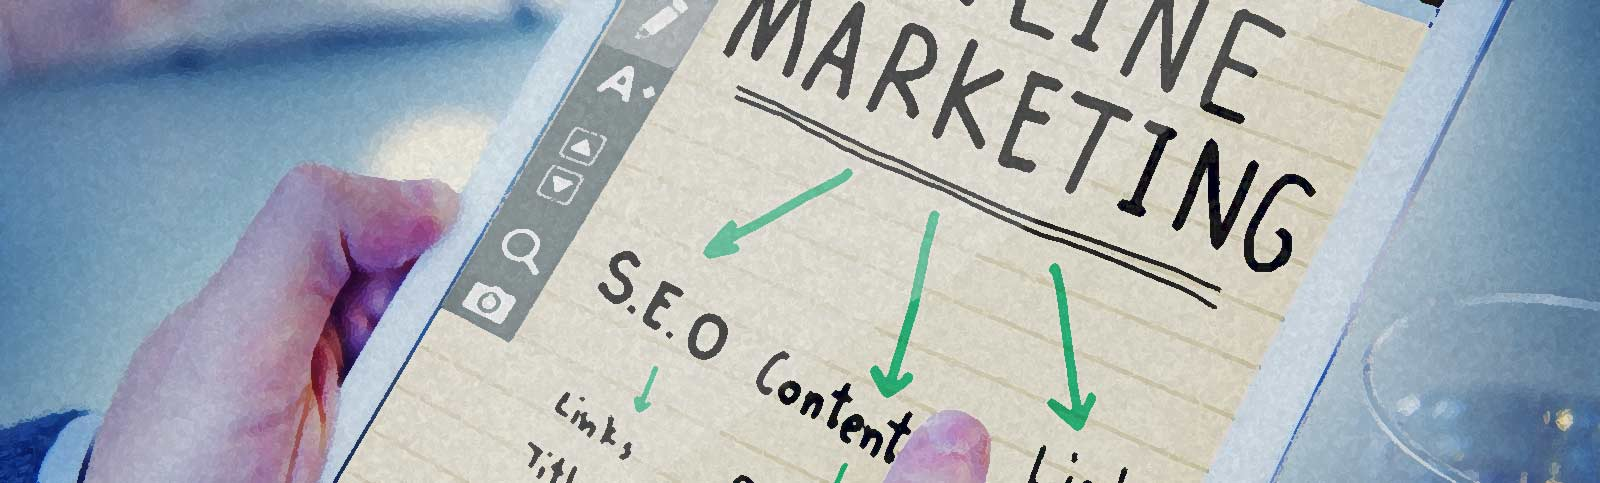 Three Lead Generation Tasks You Should Be Doing Right Now